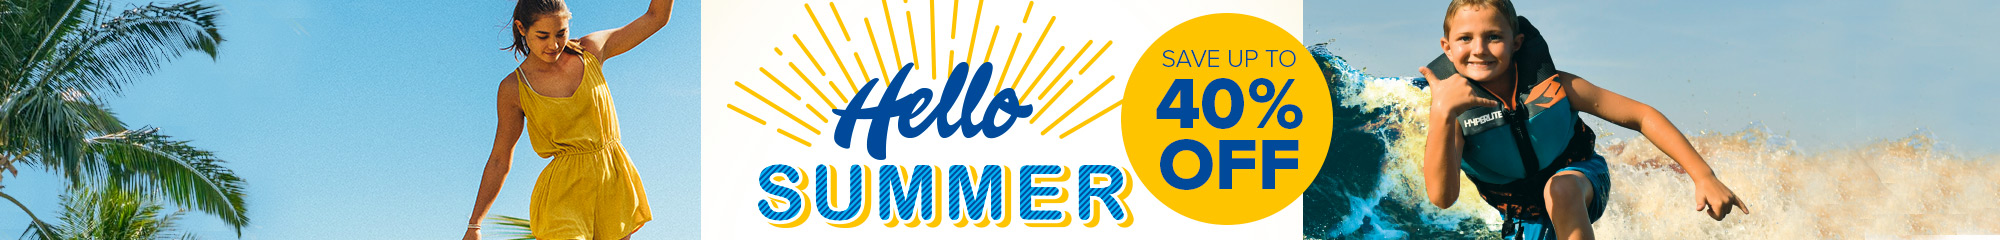 Hello Summer - Save up to 40% off